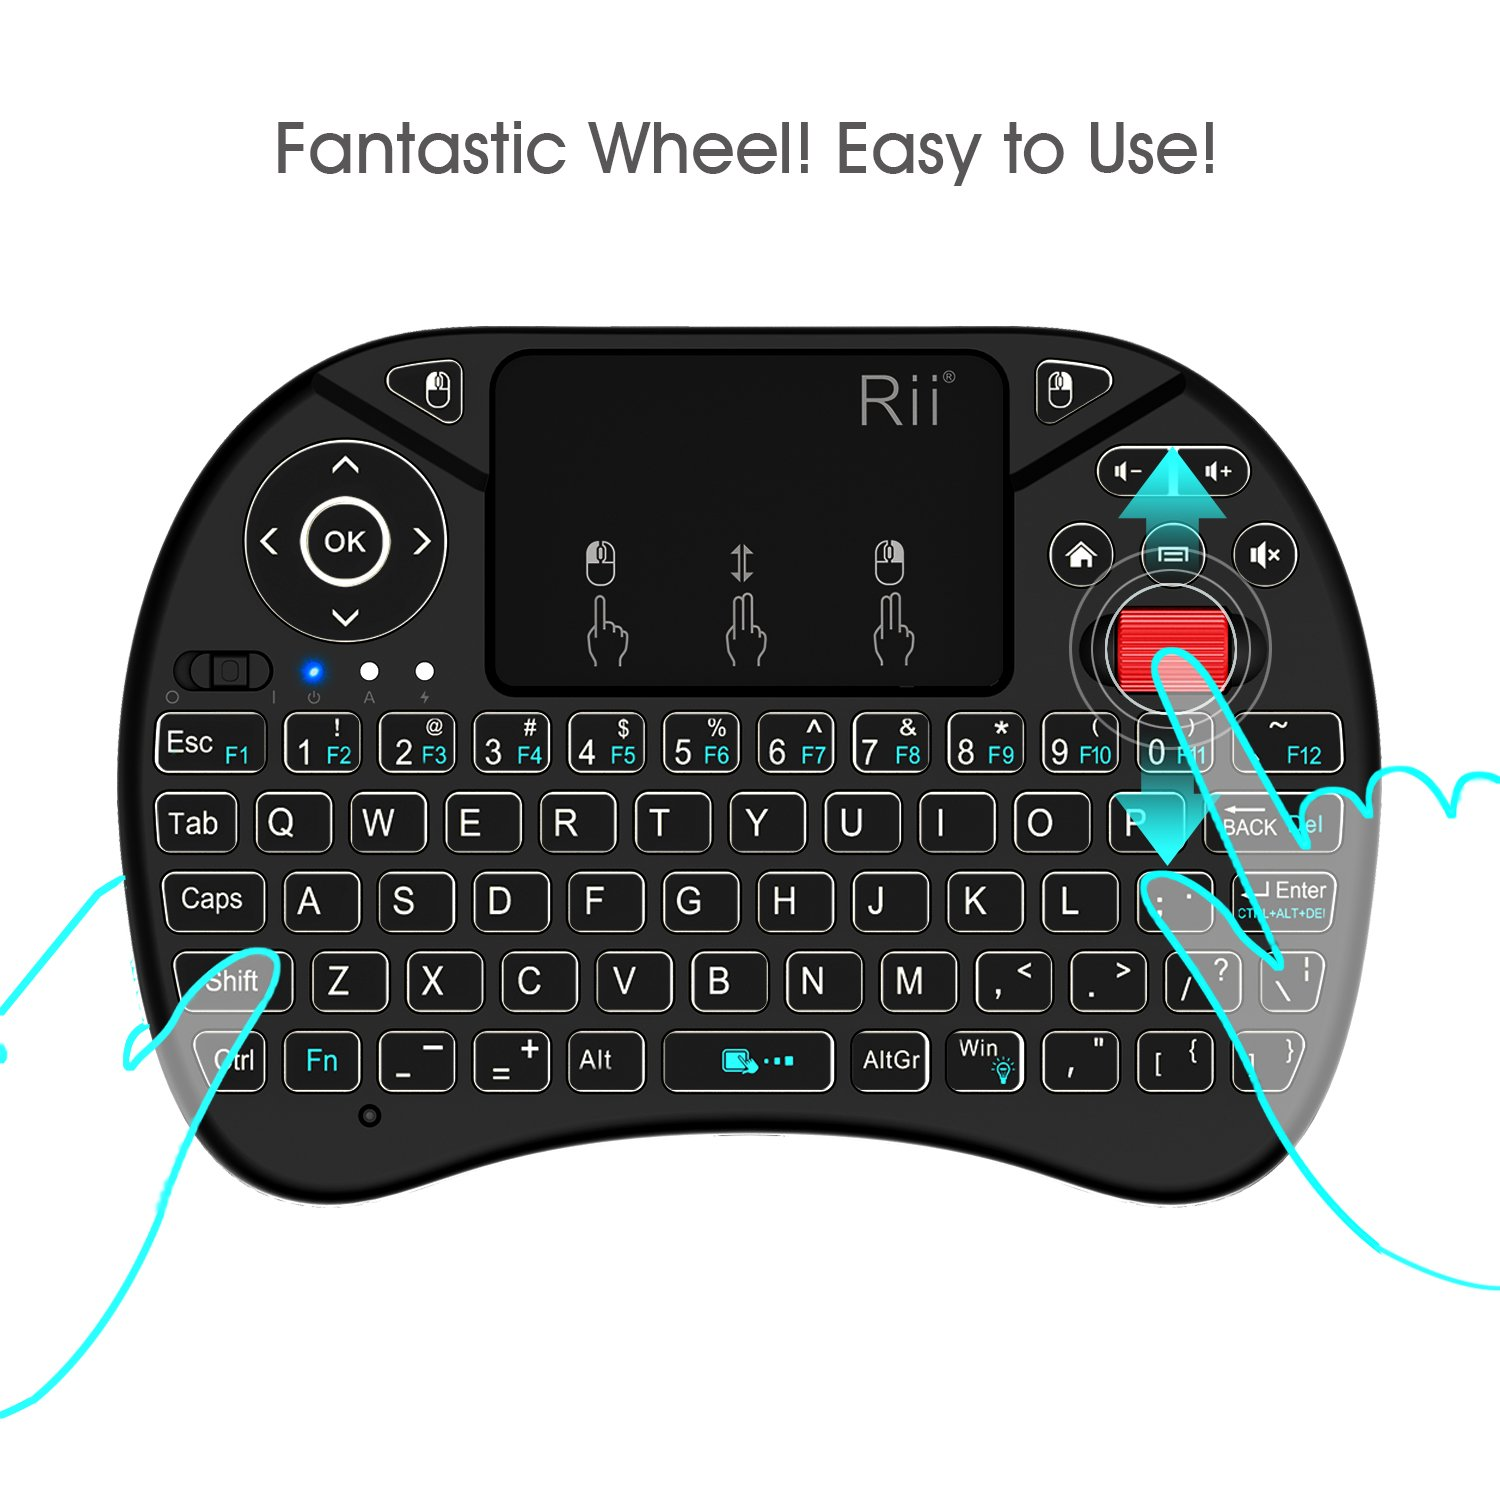 2018 Rii i8X 2.4GHz Mini Wireless Keyboard with Touchpad Mouse Combo, LED Backlit,Rechargeable Li-ion Battery-Black by Rii (Image #3)